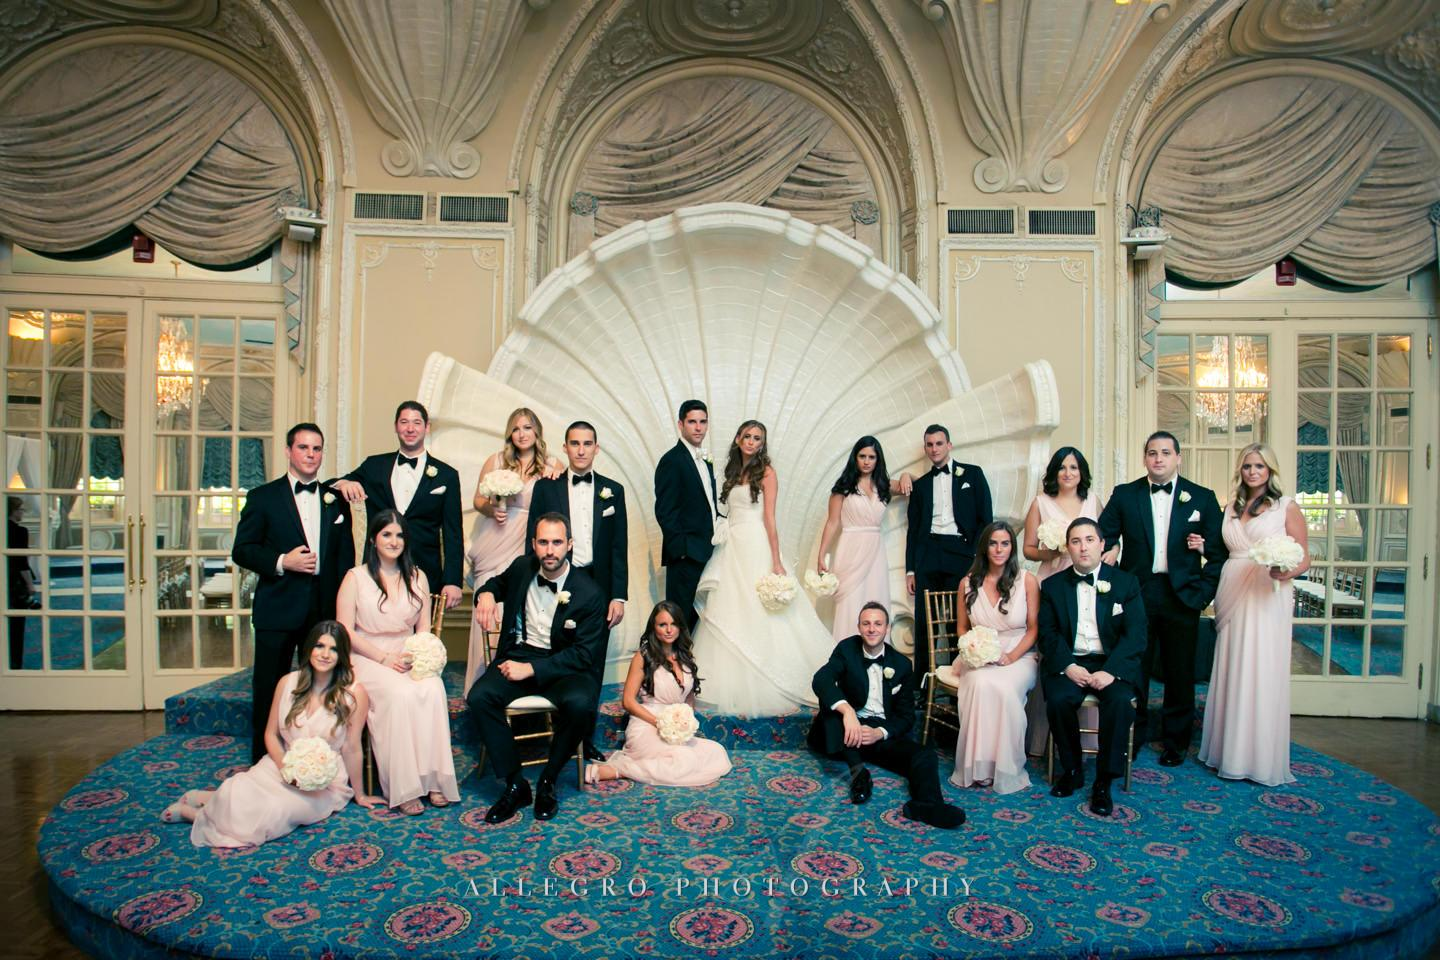 vanity fair-vogue wedding party portrait fairmont copley plaza band shell - photo by Allegro Photography